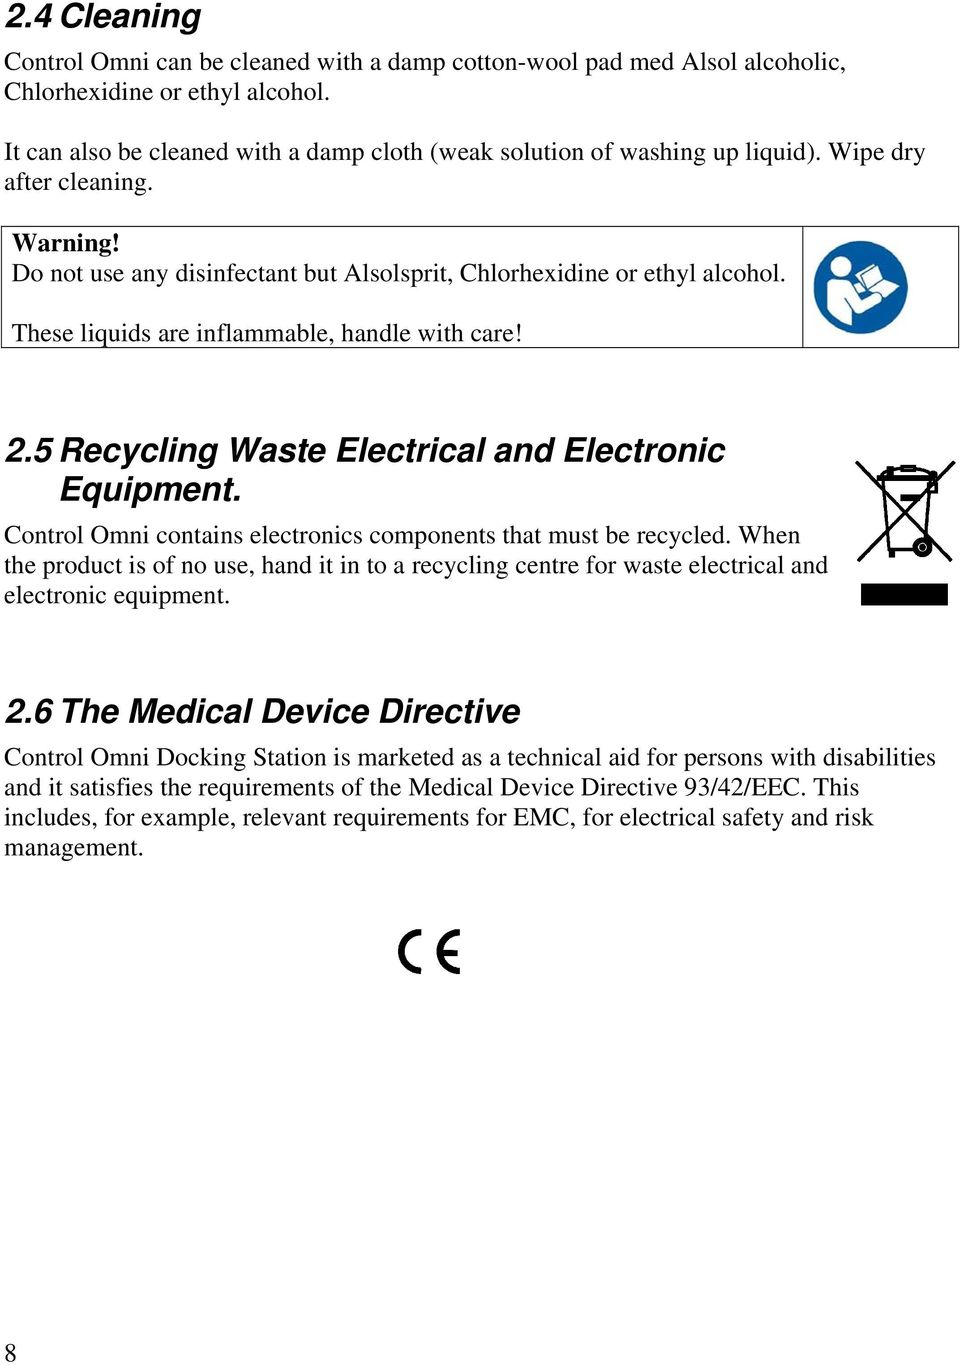 5 Recycling Waste Electrical and Electronic Equipment. Control Omni contains electronics components that must be recycled.